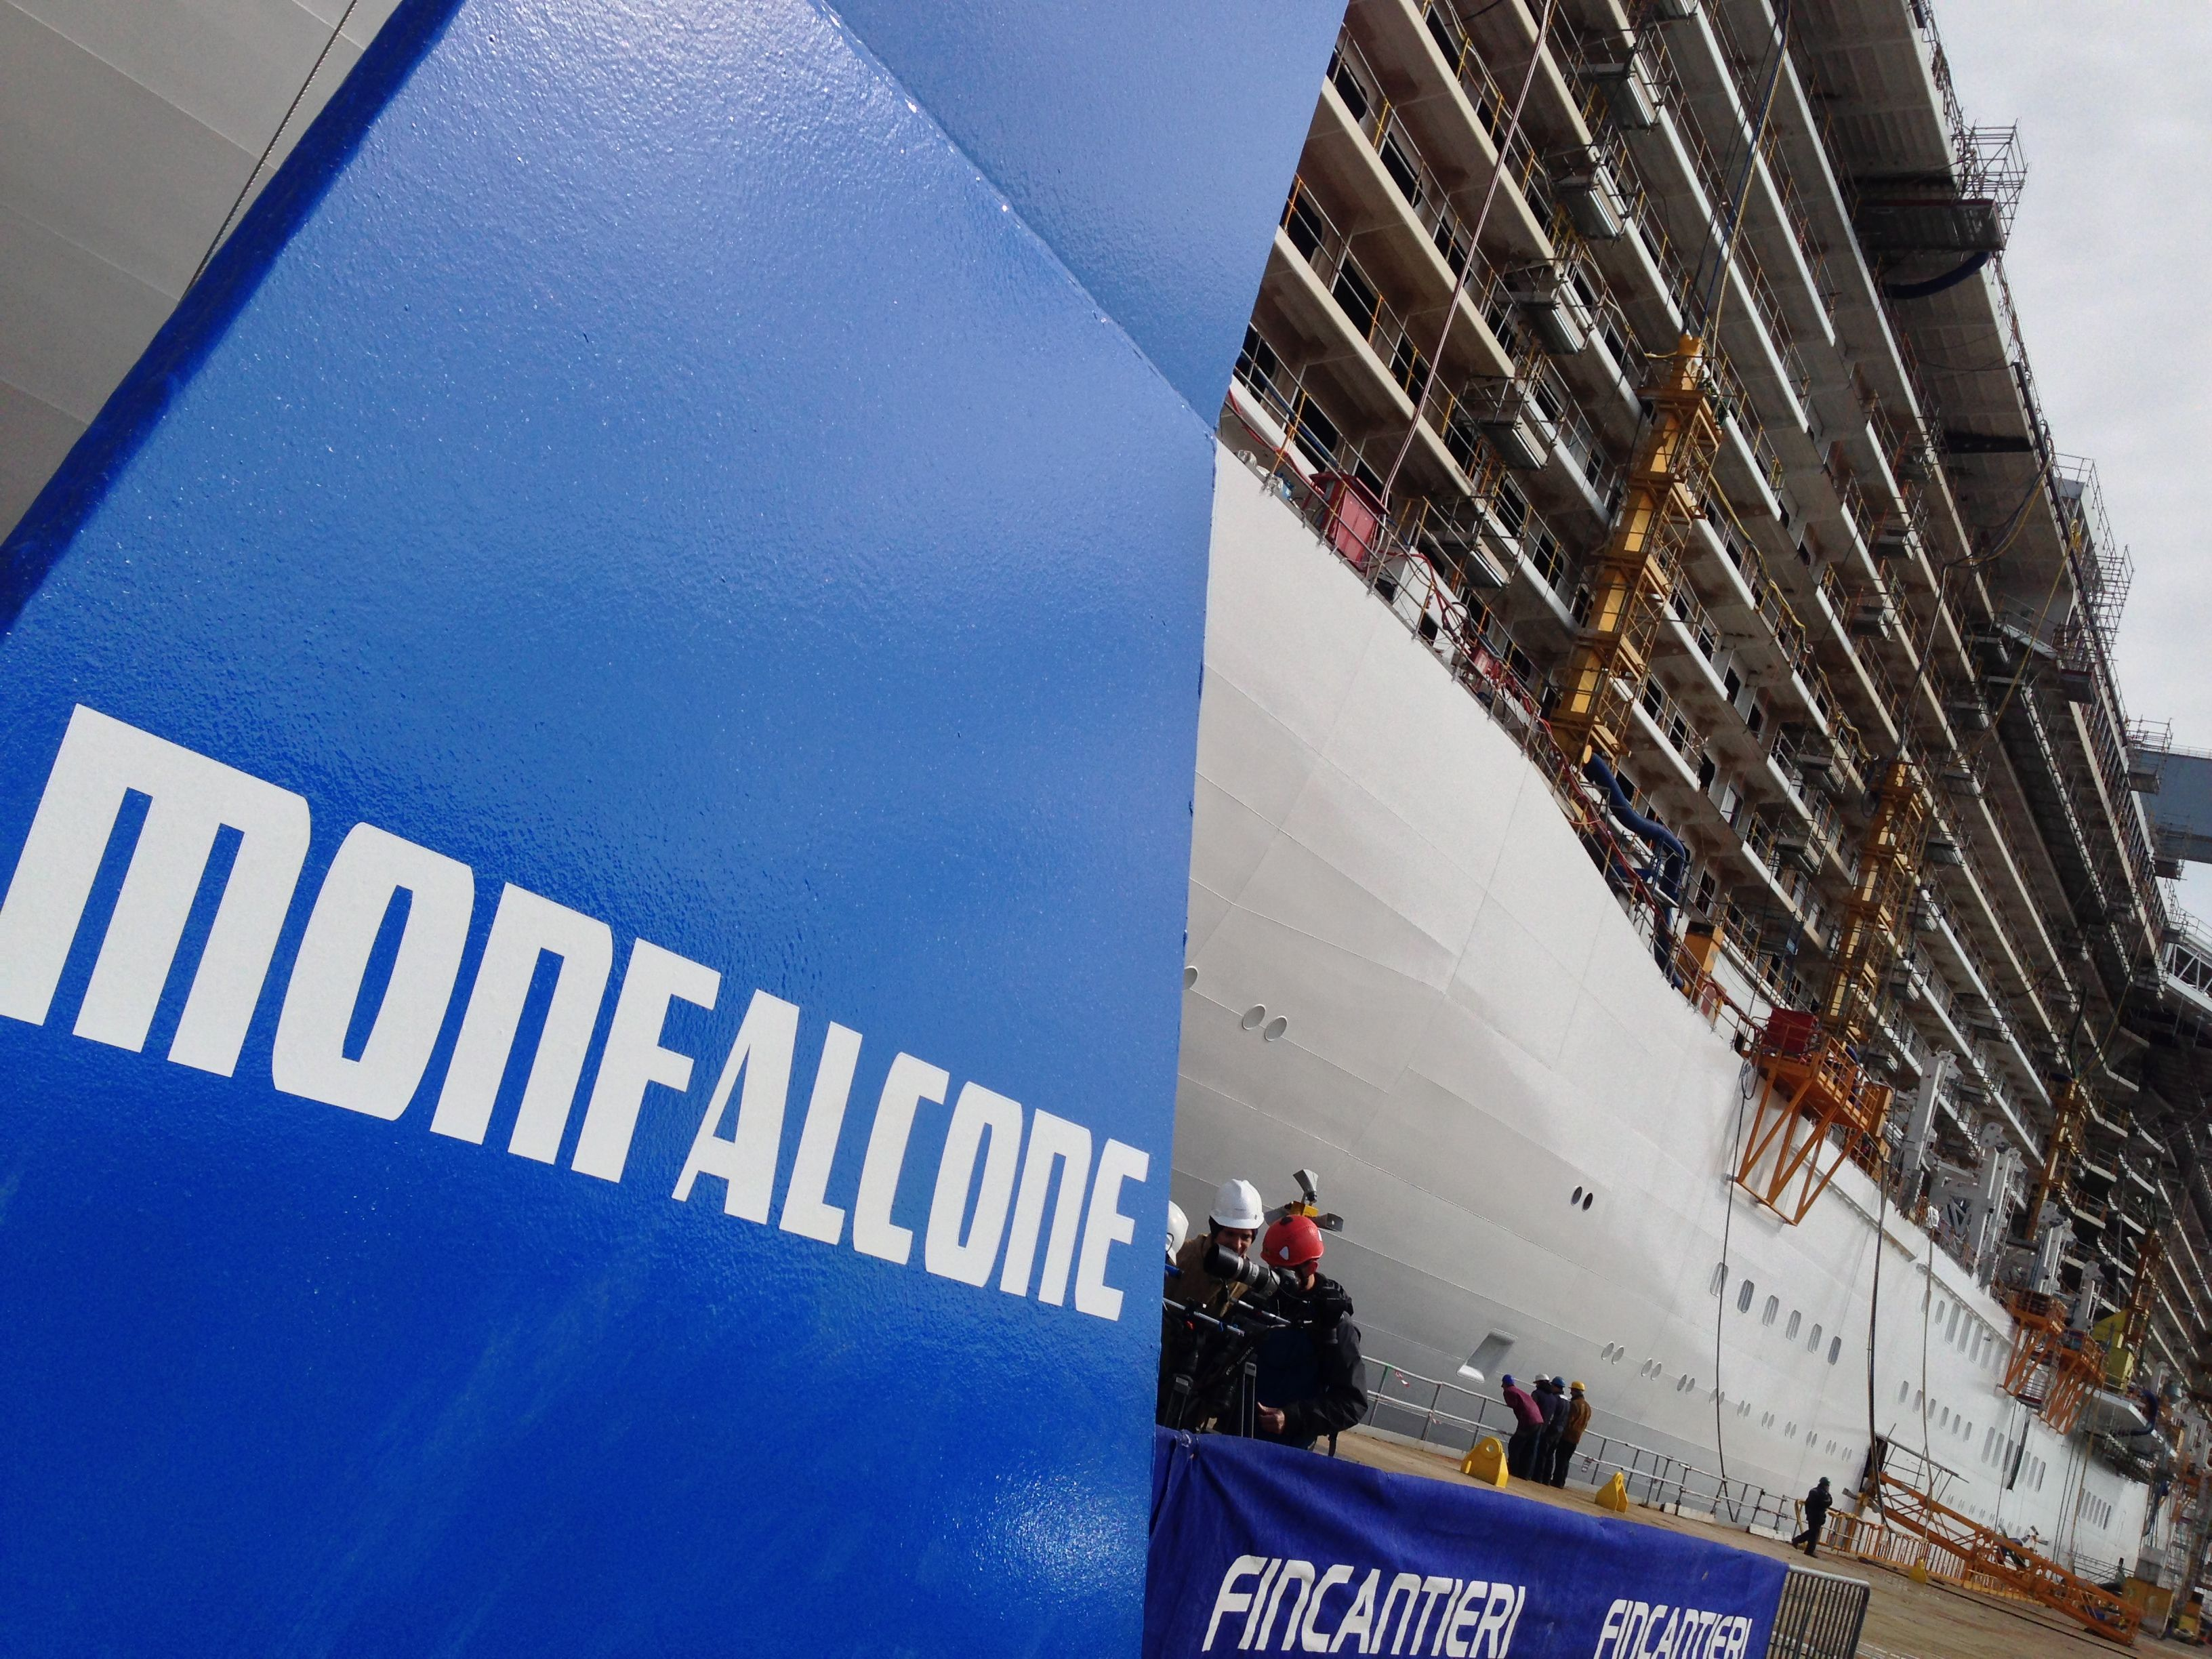 Seen when visiting @Princess Cruises #RoyalPrincess under constructioin